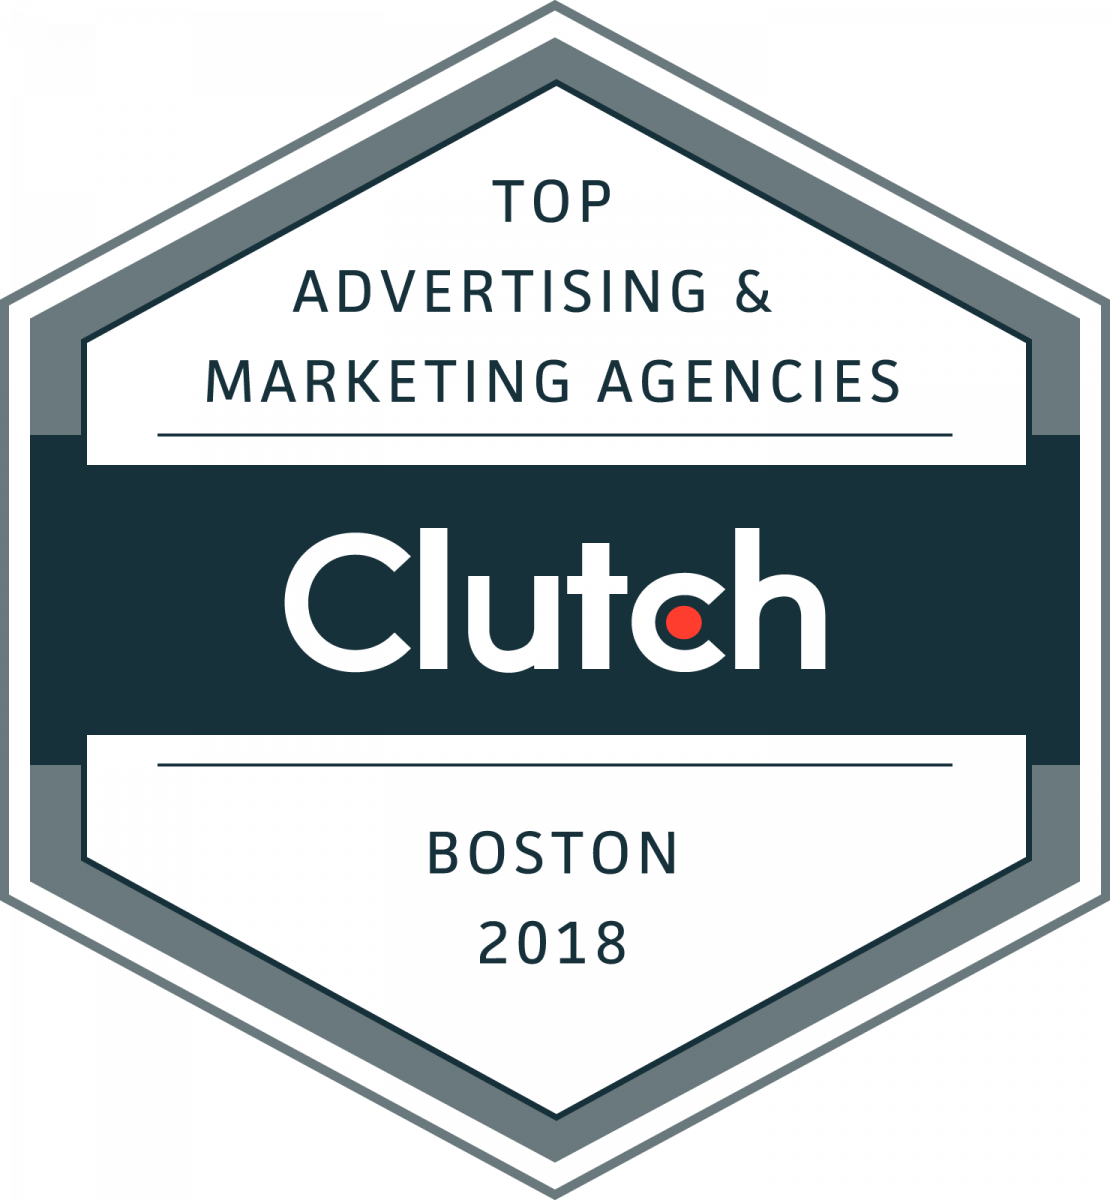 Top Advertising & Marketing Agencies Boston 2018 Badge